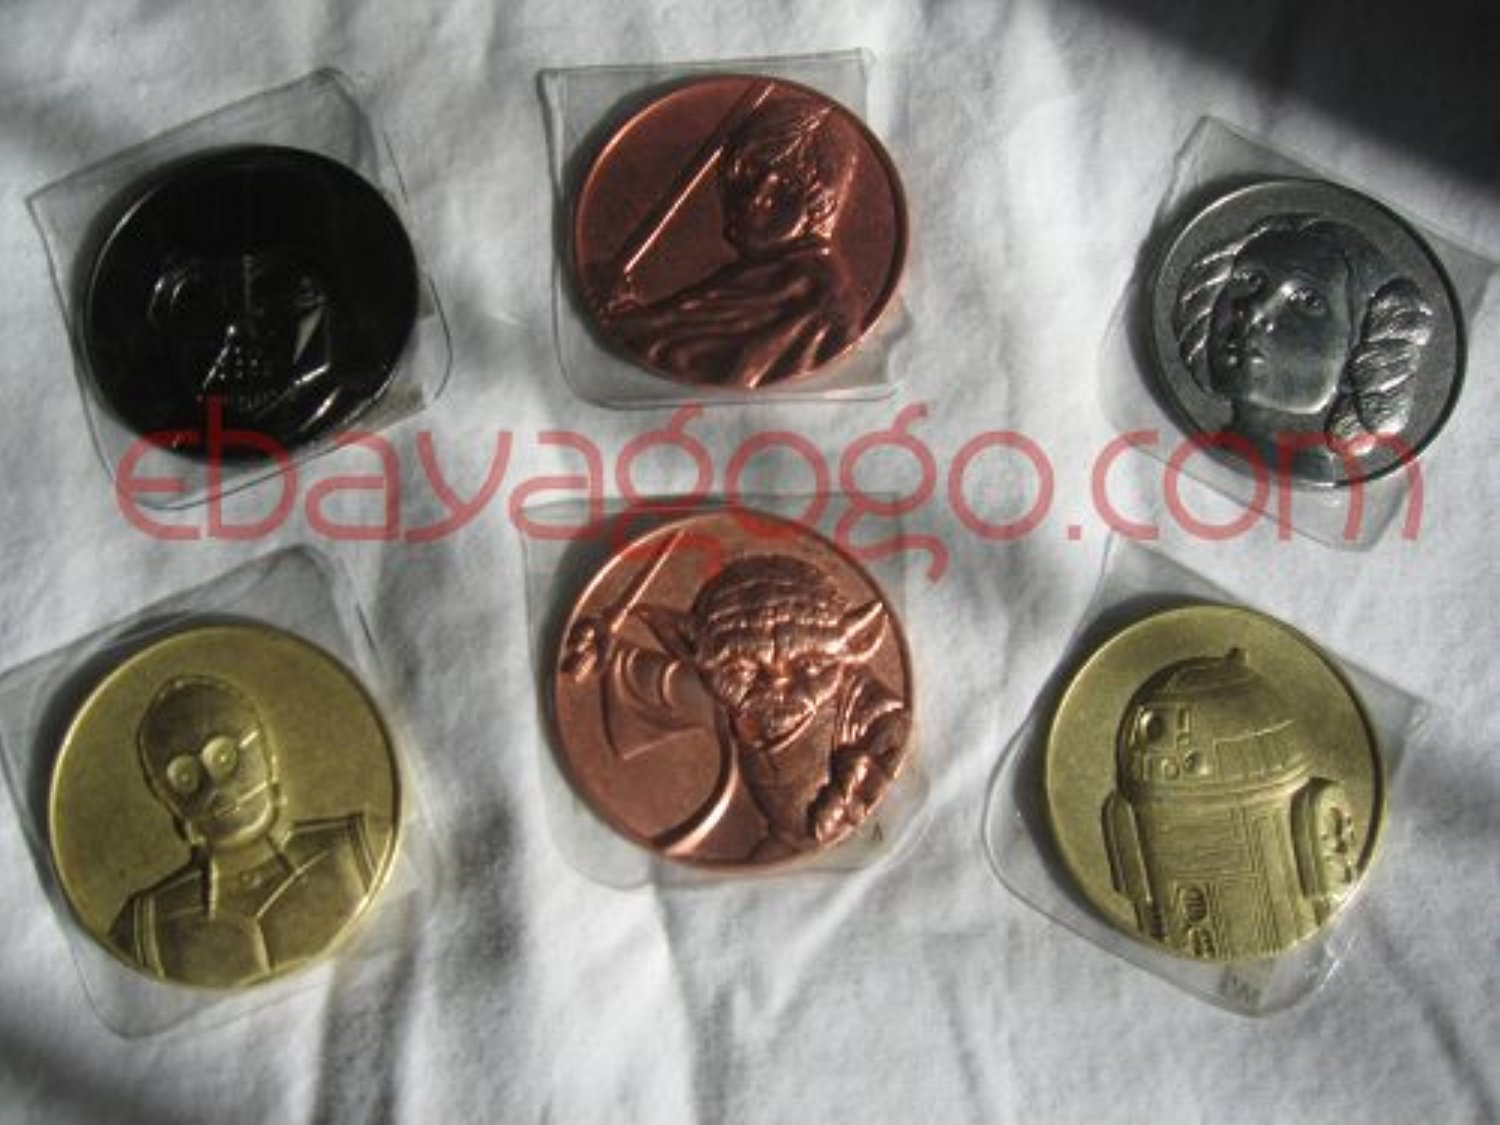 Star Wars Collector Coins: Darth Vader, Yoda, Luke